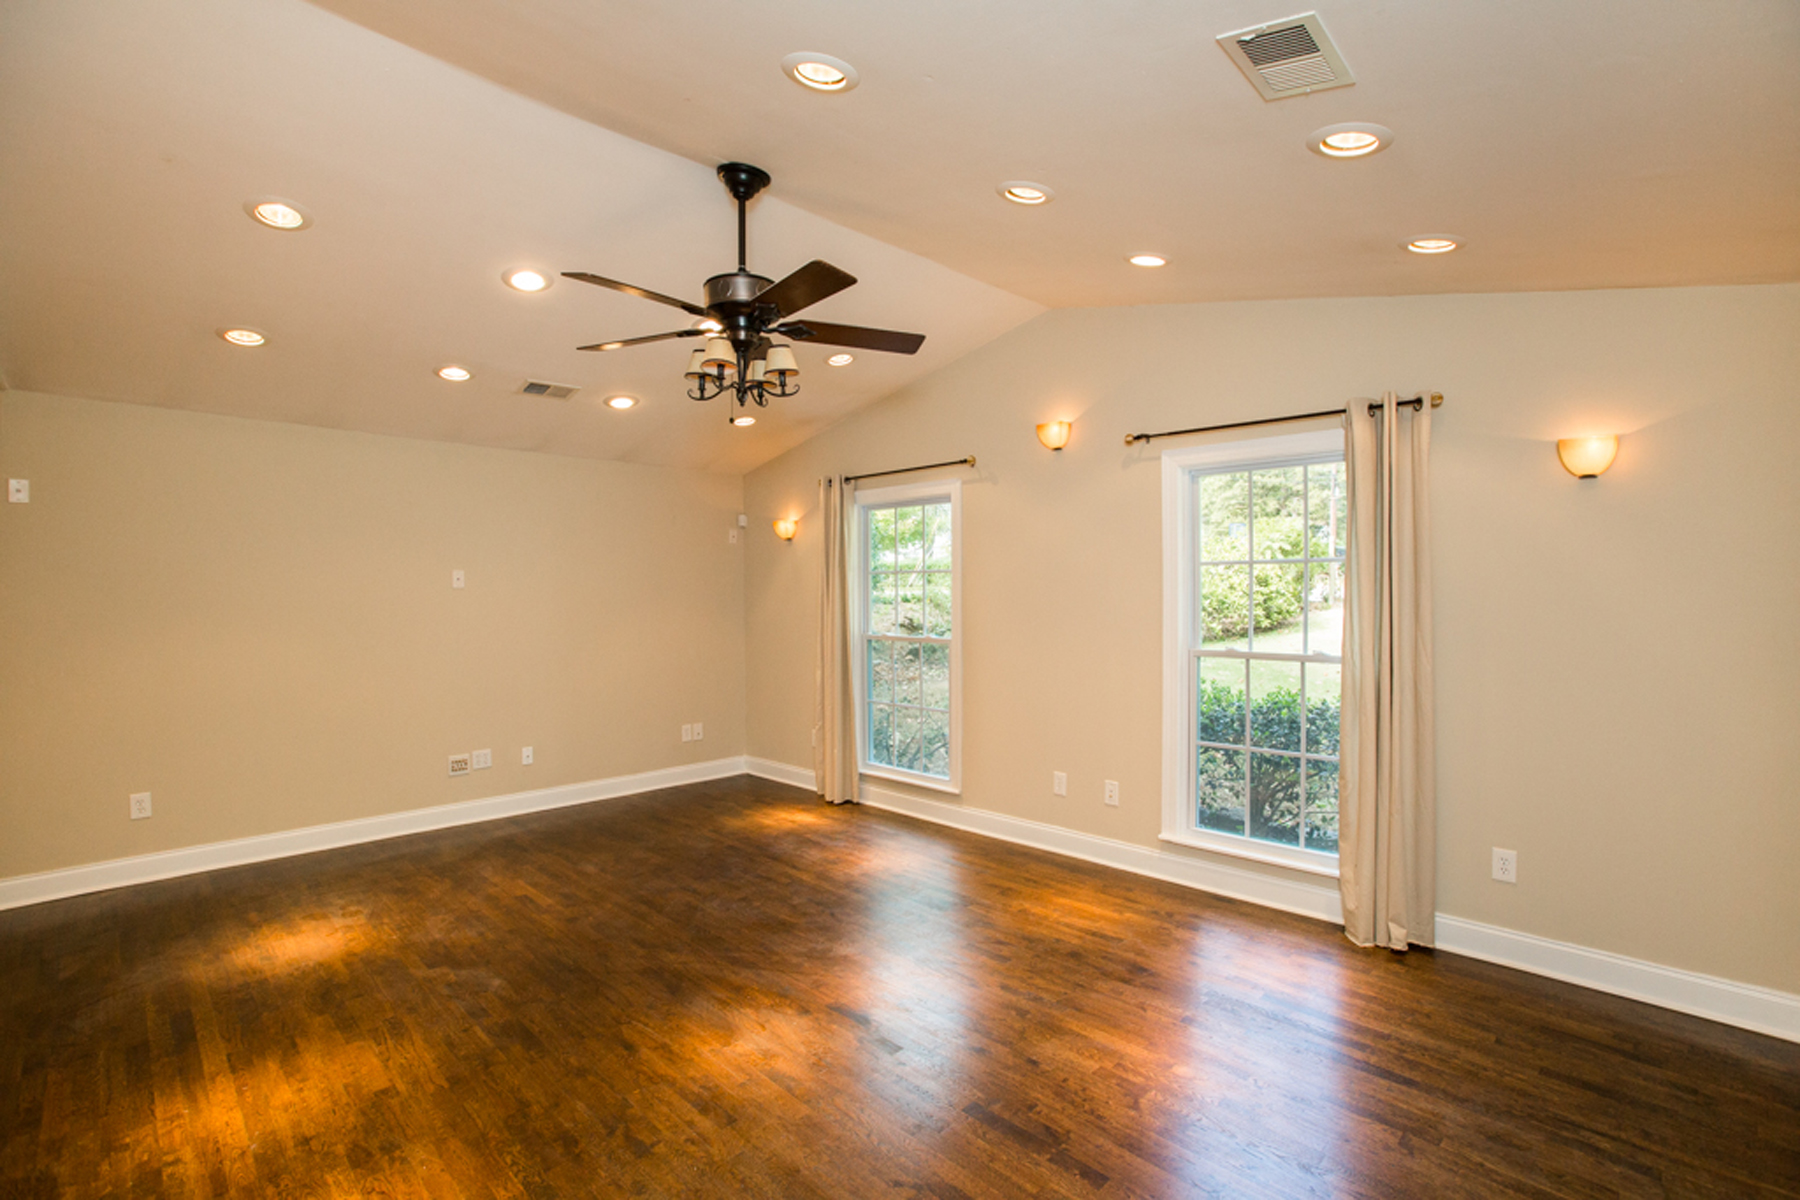 Additional photo for property listing at Cul-de-sac Living In The Heart Of Chamblee 3935 Forrest Court Atlanta, Γεωργια 30341 Ηνωμενεσ Πολιτειεσ